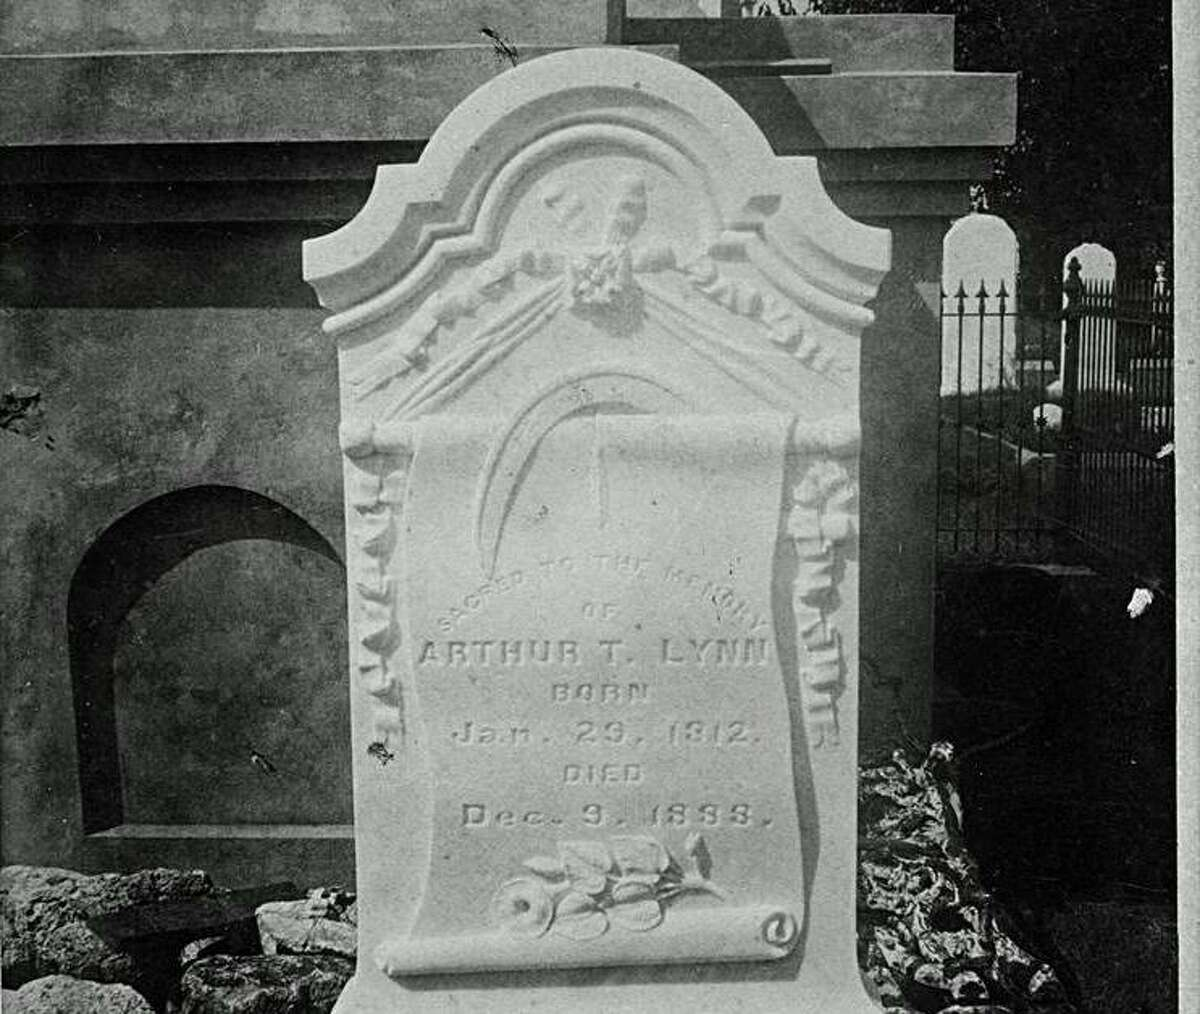 The grave of Arthur Lynn, the second British consul-general to serve in Texas, stands in City Cemetery in Galveston.